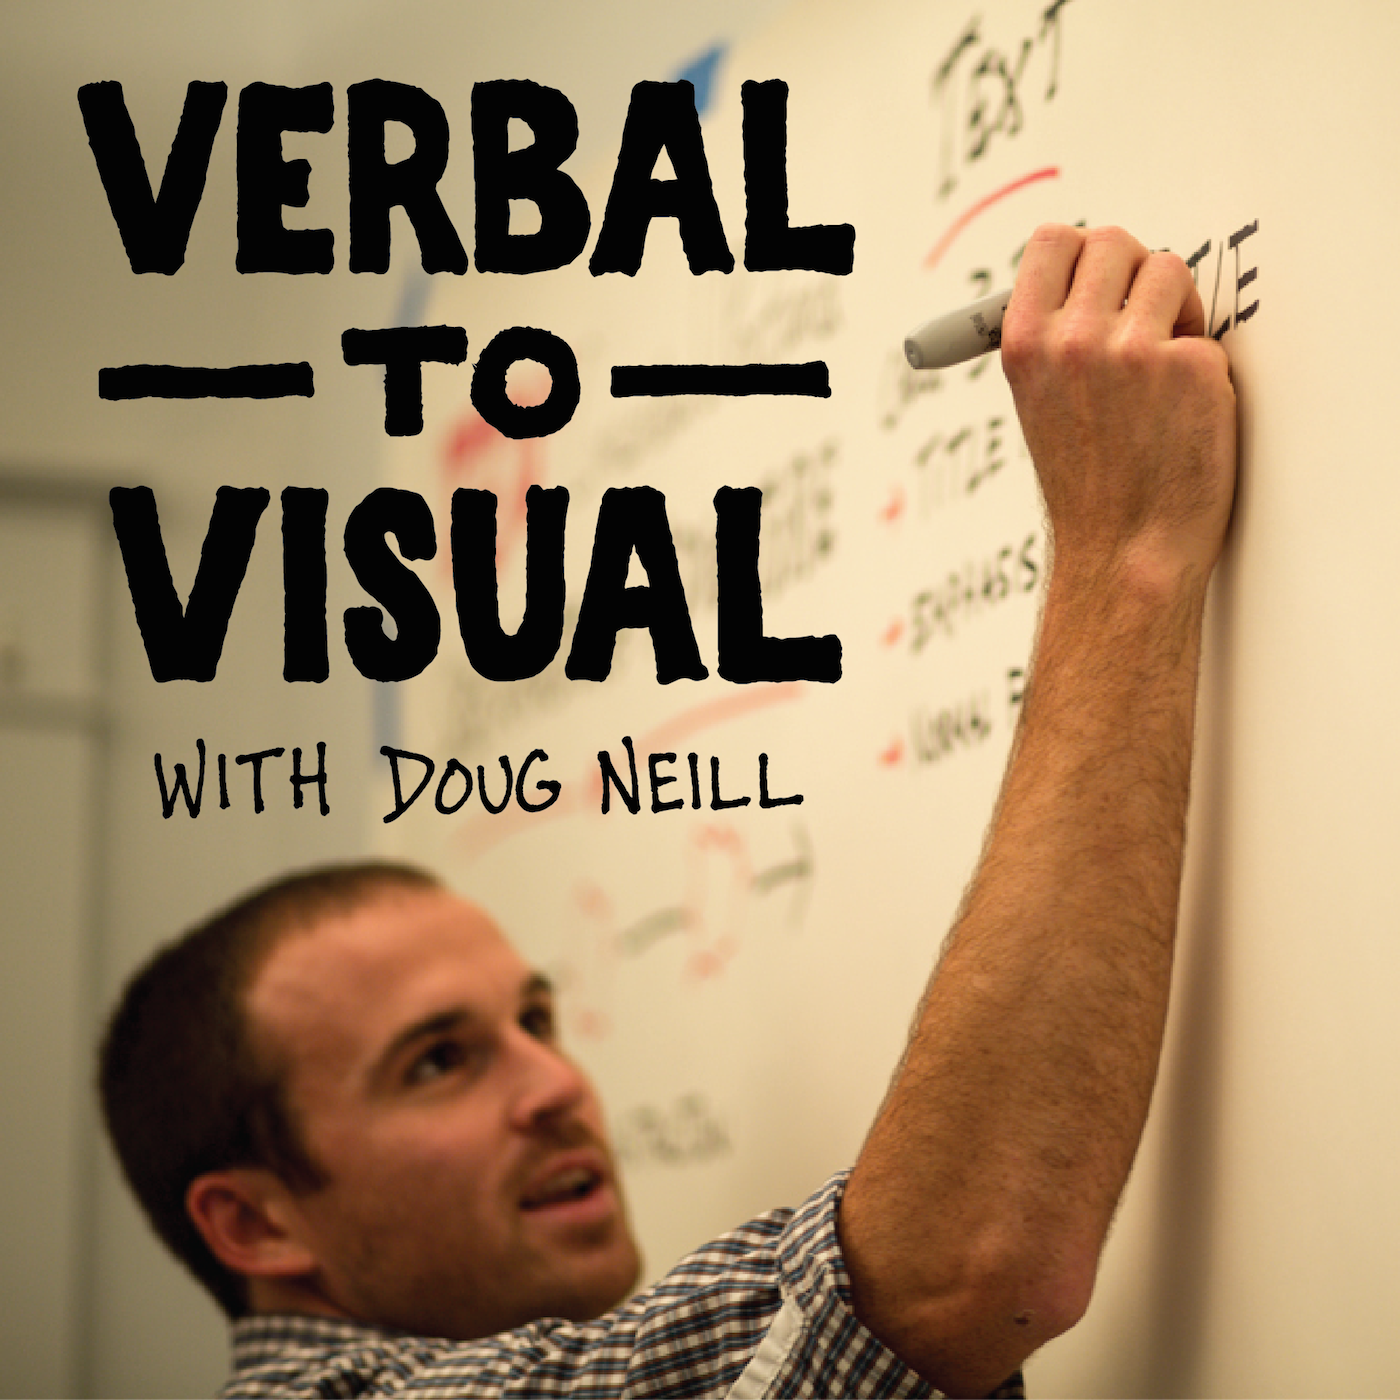 Verbal to Visual - Doug Neill -